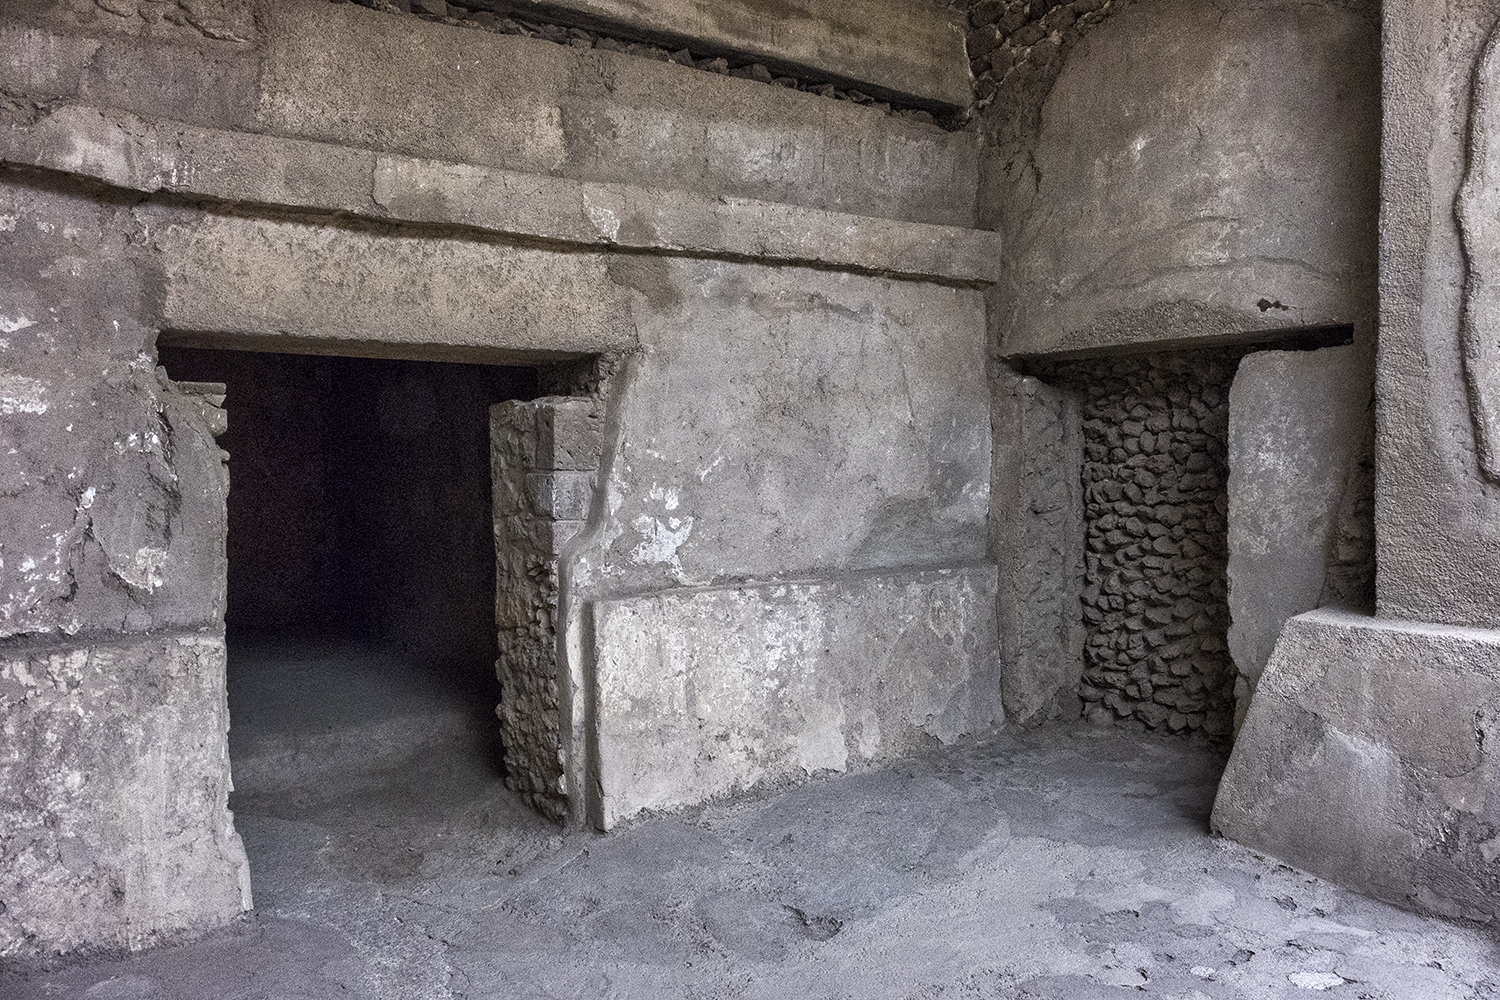 Inside the Pyramid, Teotihuacan, Mexico